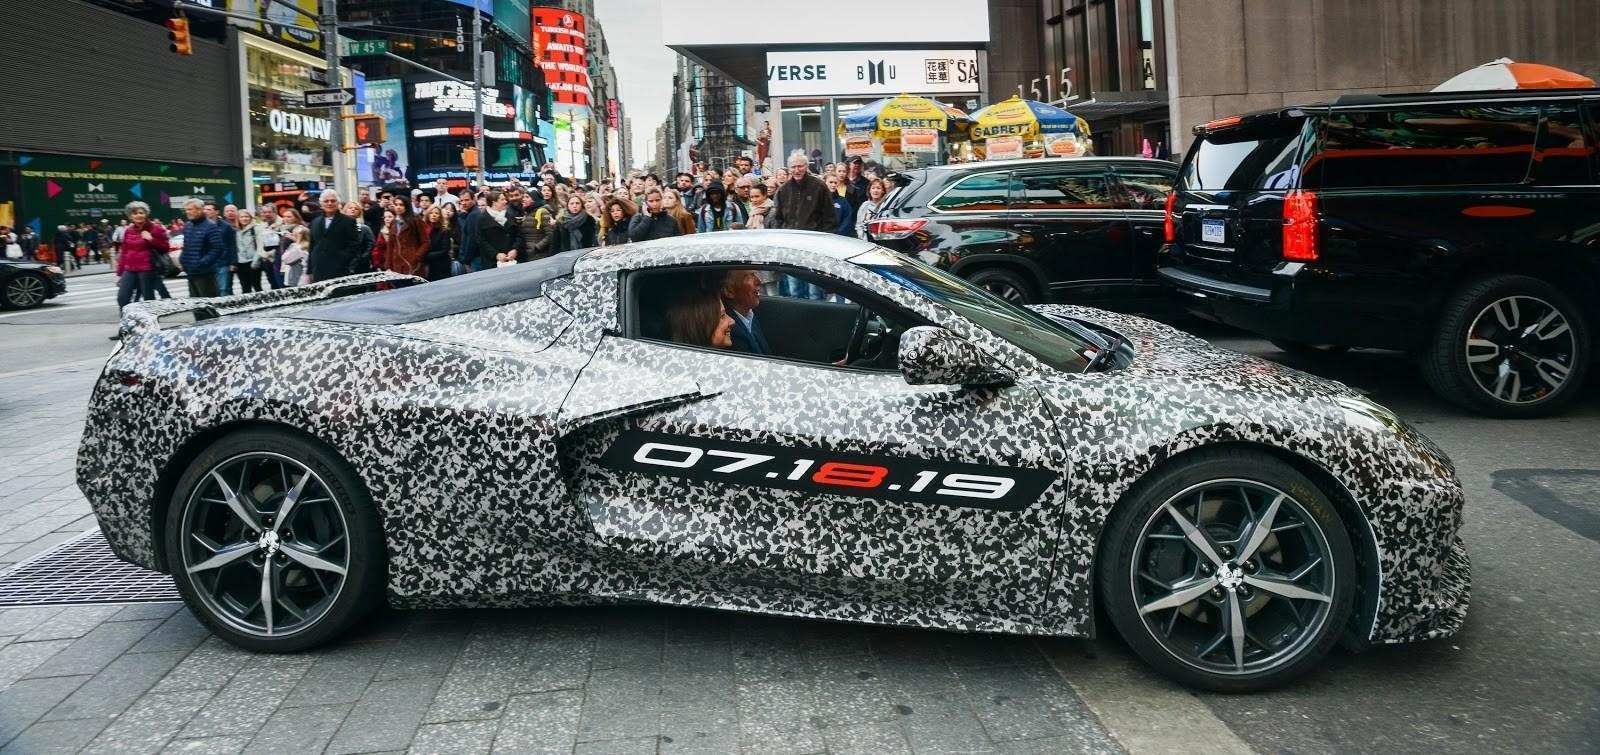 52 The Best Pictures Of The 2020 Chevrolet Corvette Release